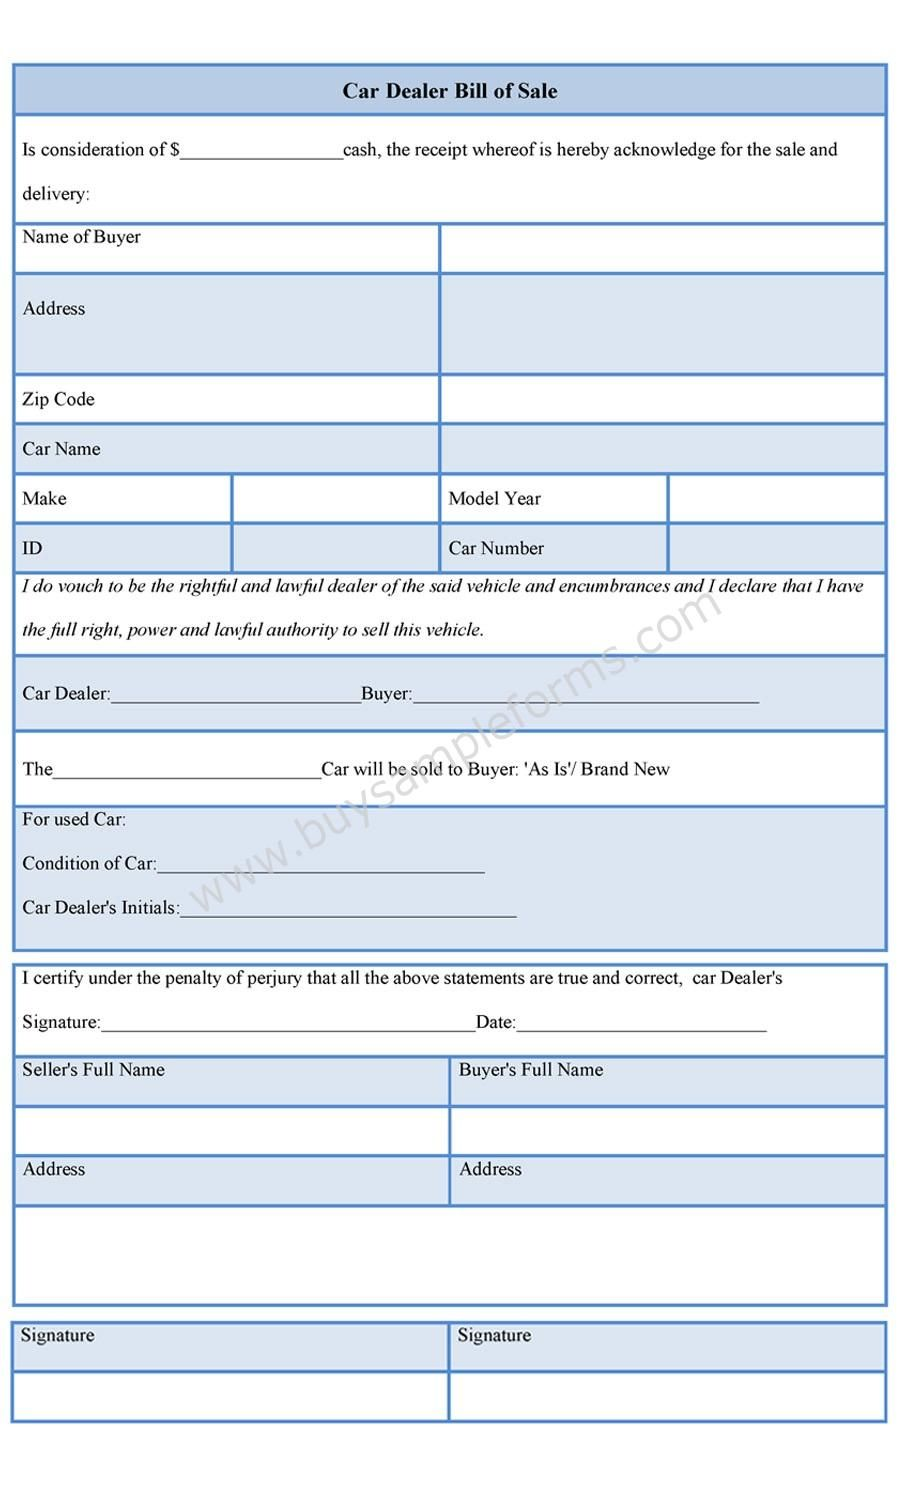 car dealer bill of sale form cars